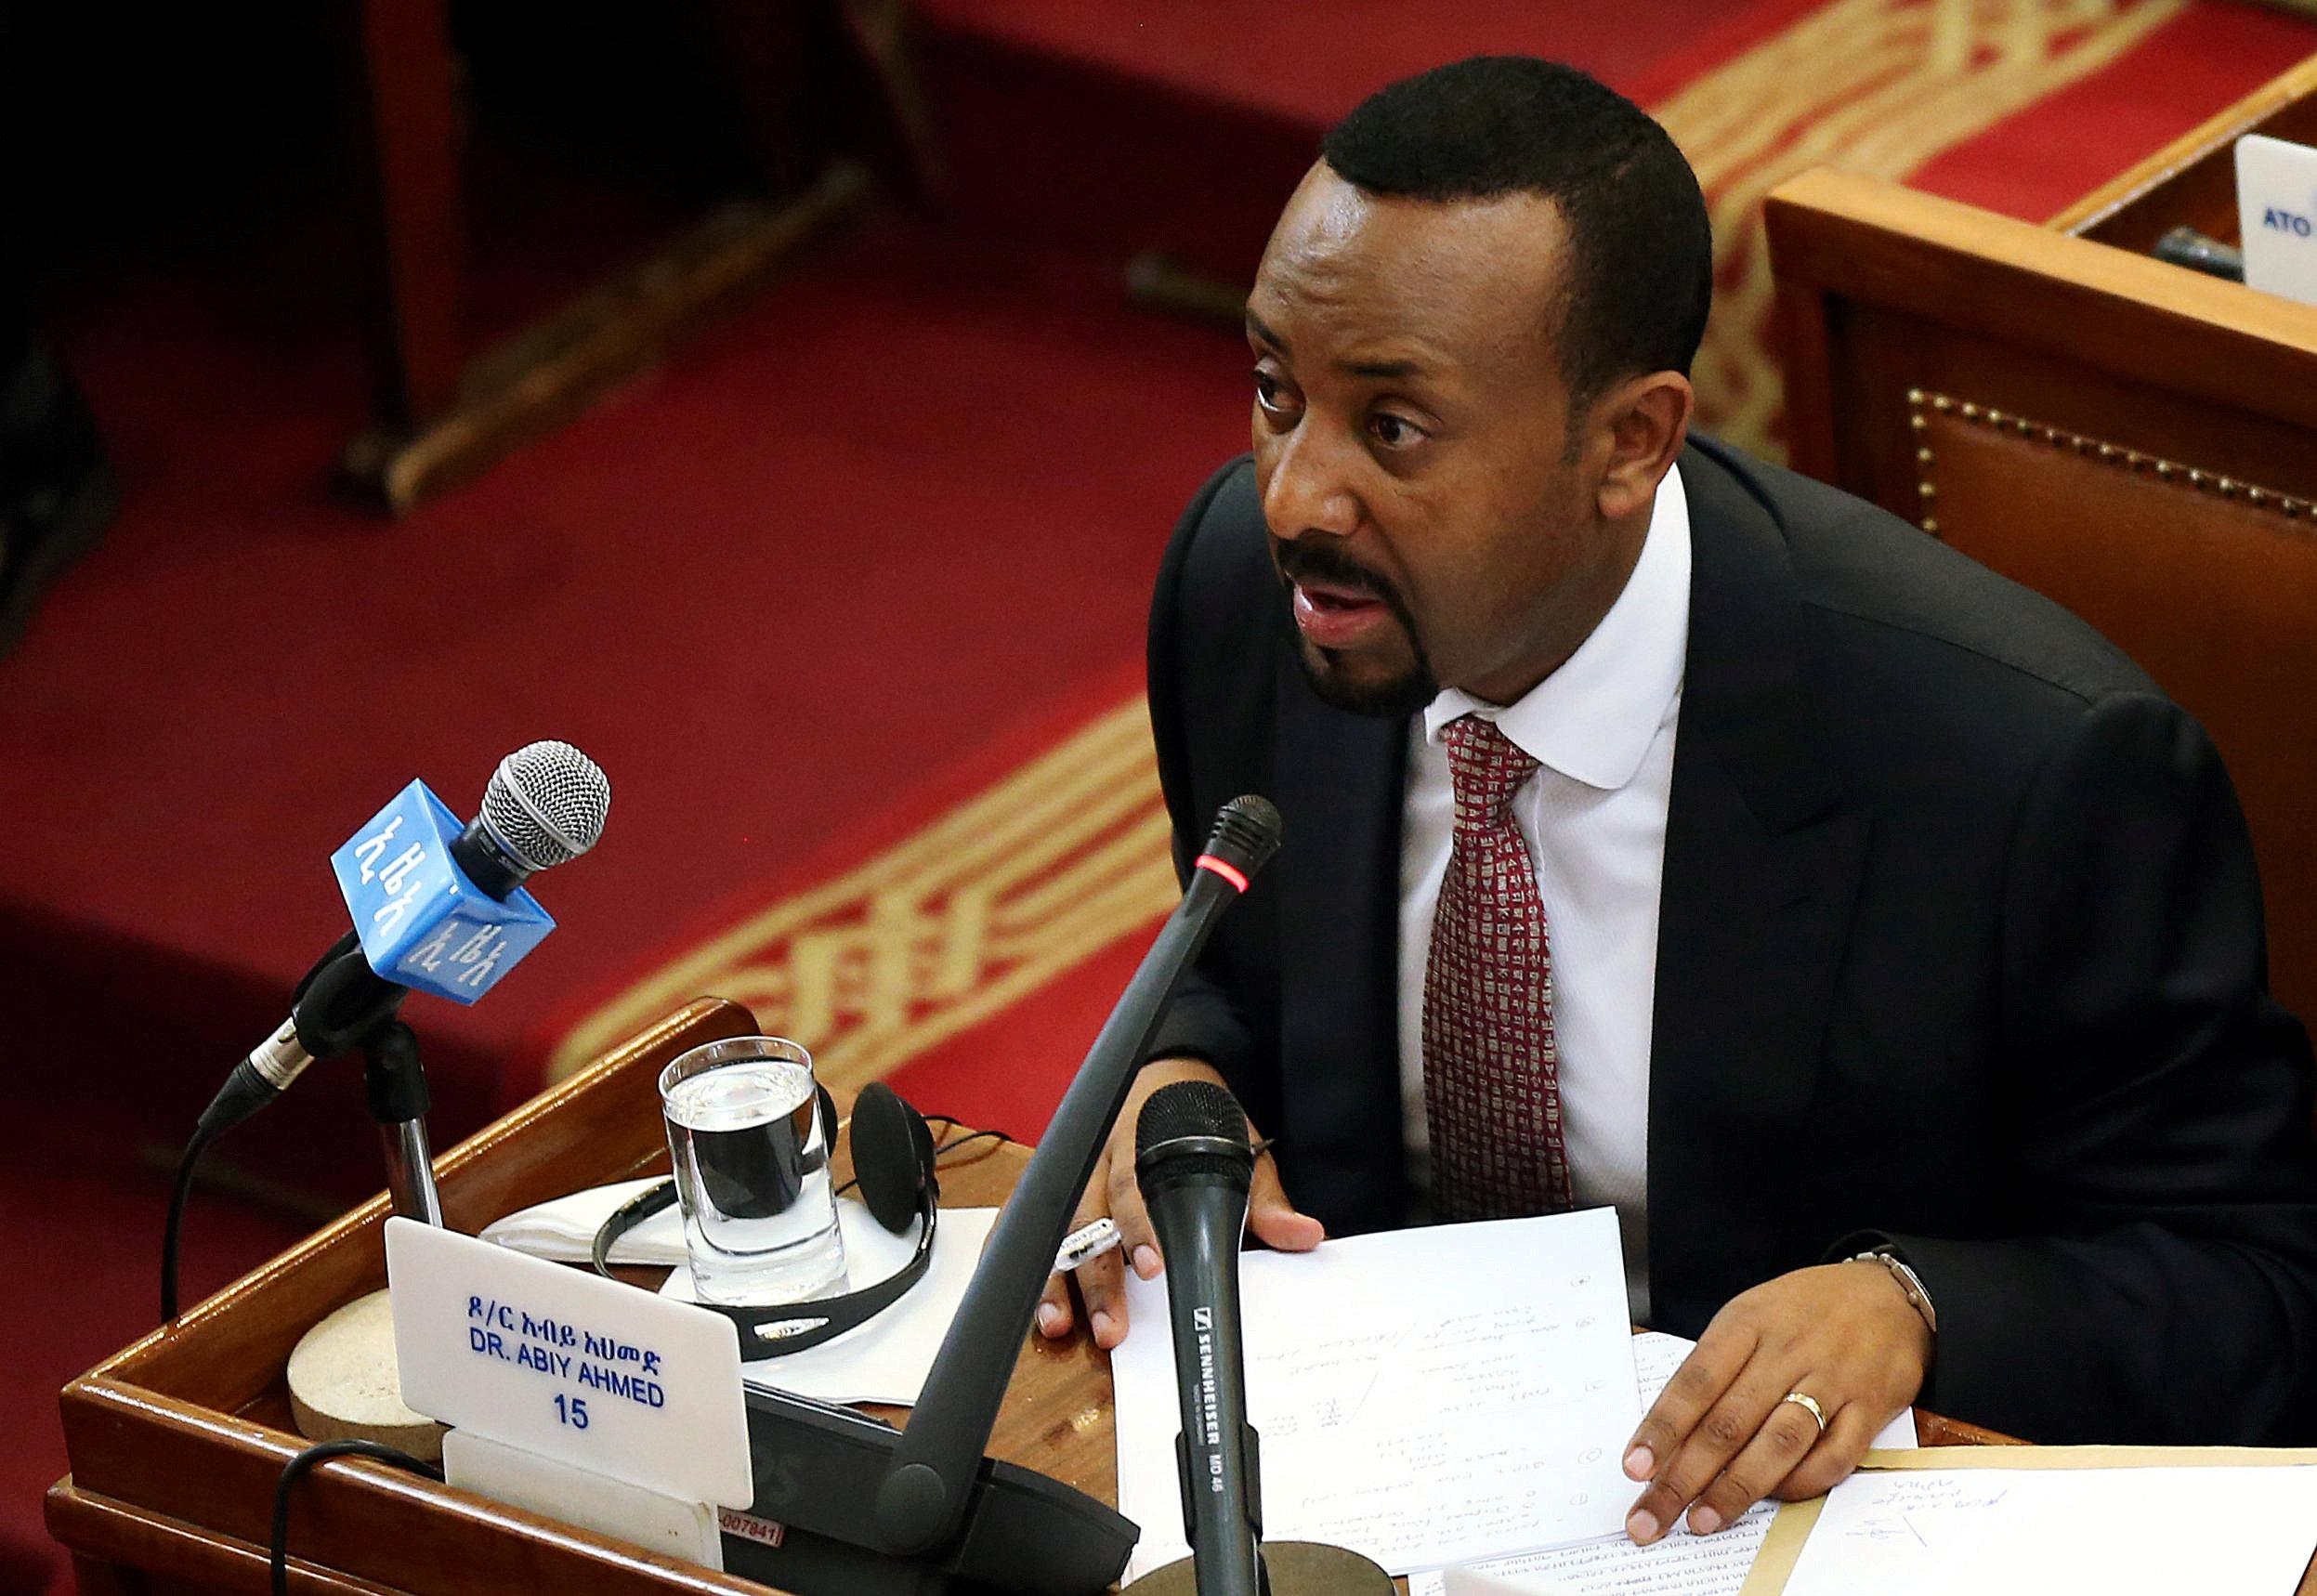 Ethiopia's newly elected Prime Minister Abiy Ahmed addresses the members of parliament inside the House of Peoples' Representatives in Addis Ababa, Ethiopia April 19, 2018. Tiksa Negeri